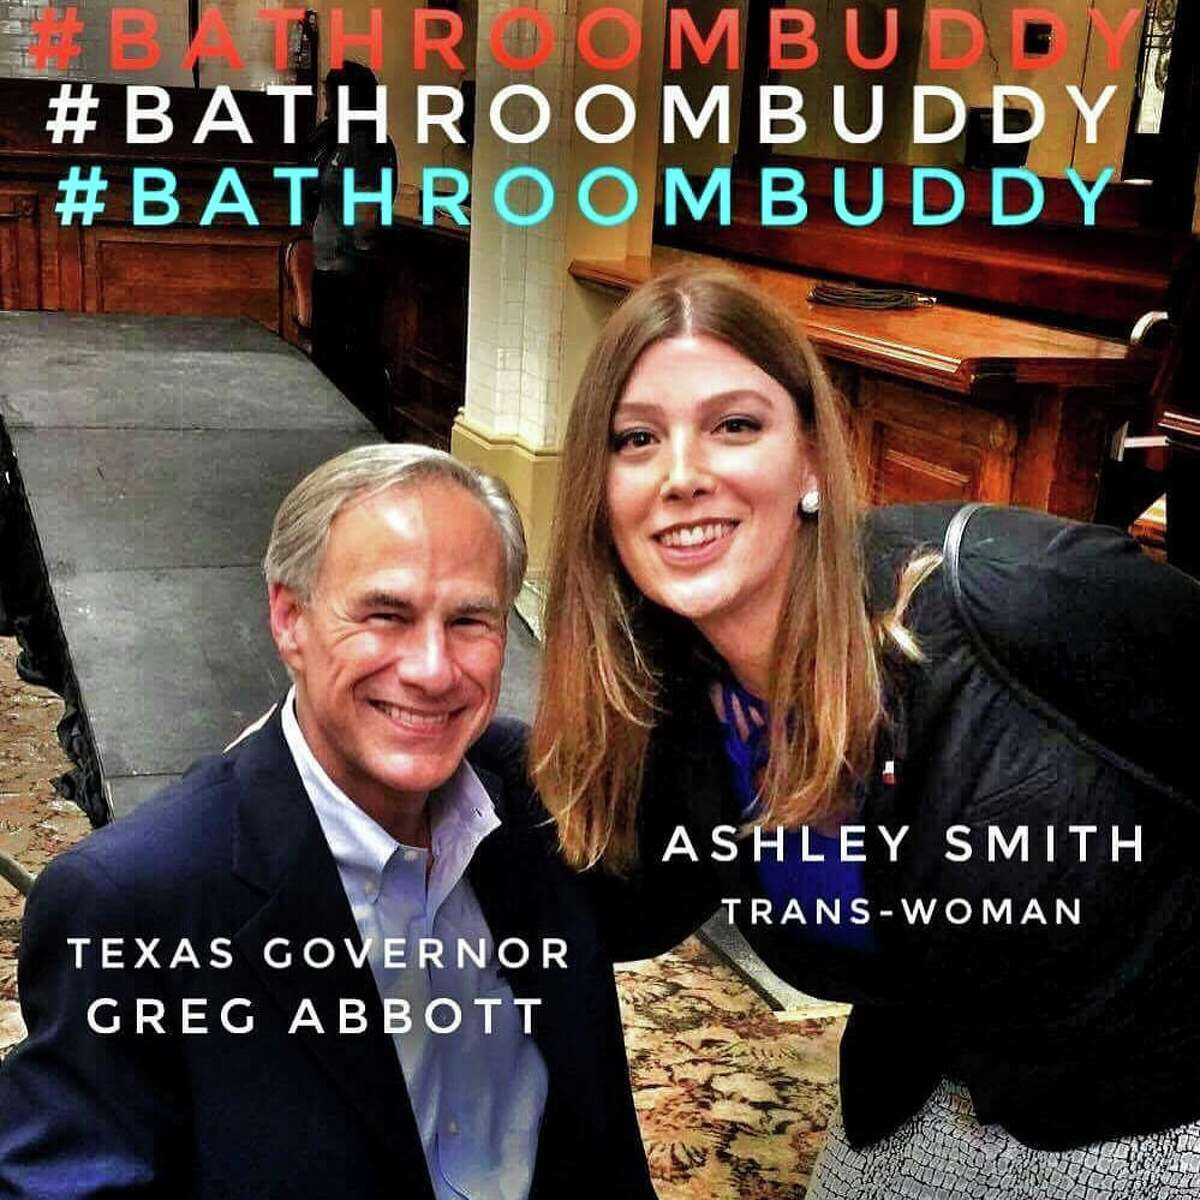 Local San Antonio activist, Ashley Smith, snaps a photo with Governor Greg Abbott after Abbott announced he would run for a second term during a special event in San Antonio Friday July 14, 2017, at Sunset Station.